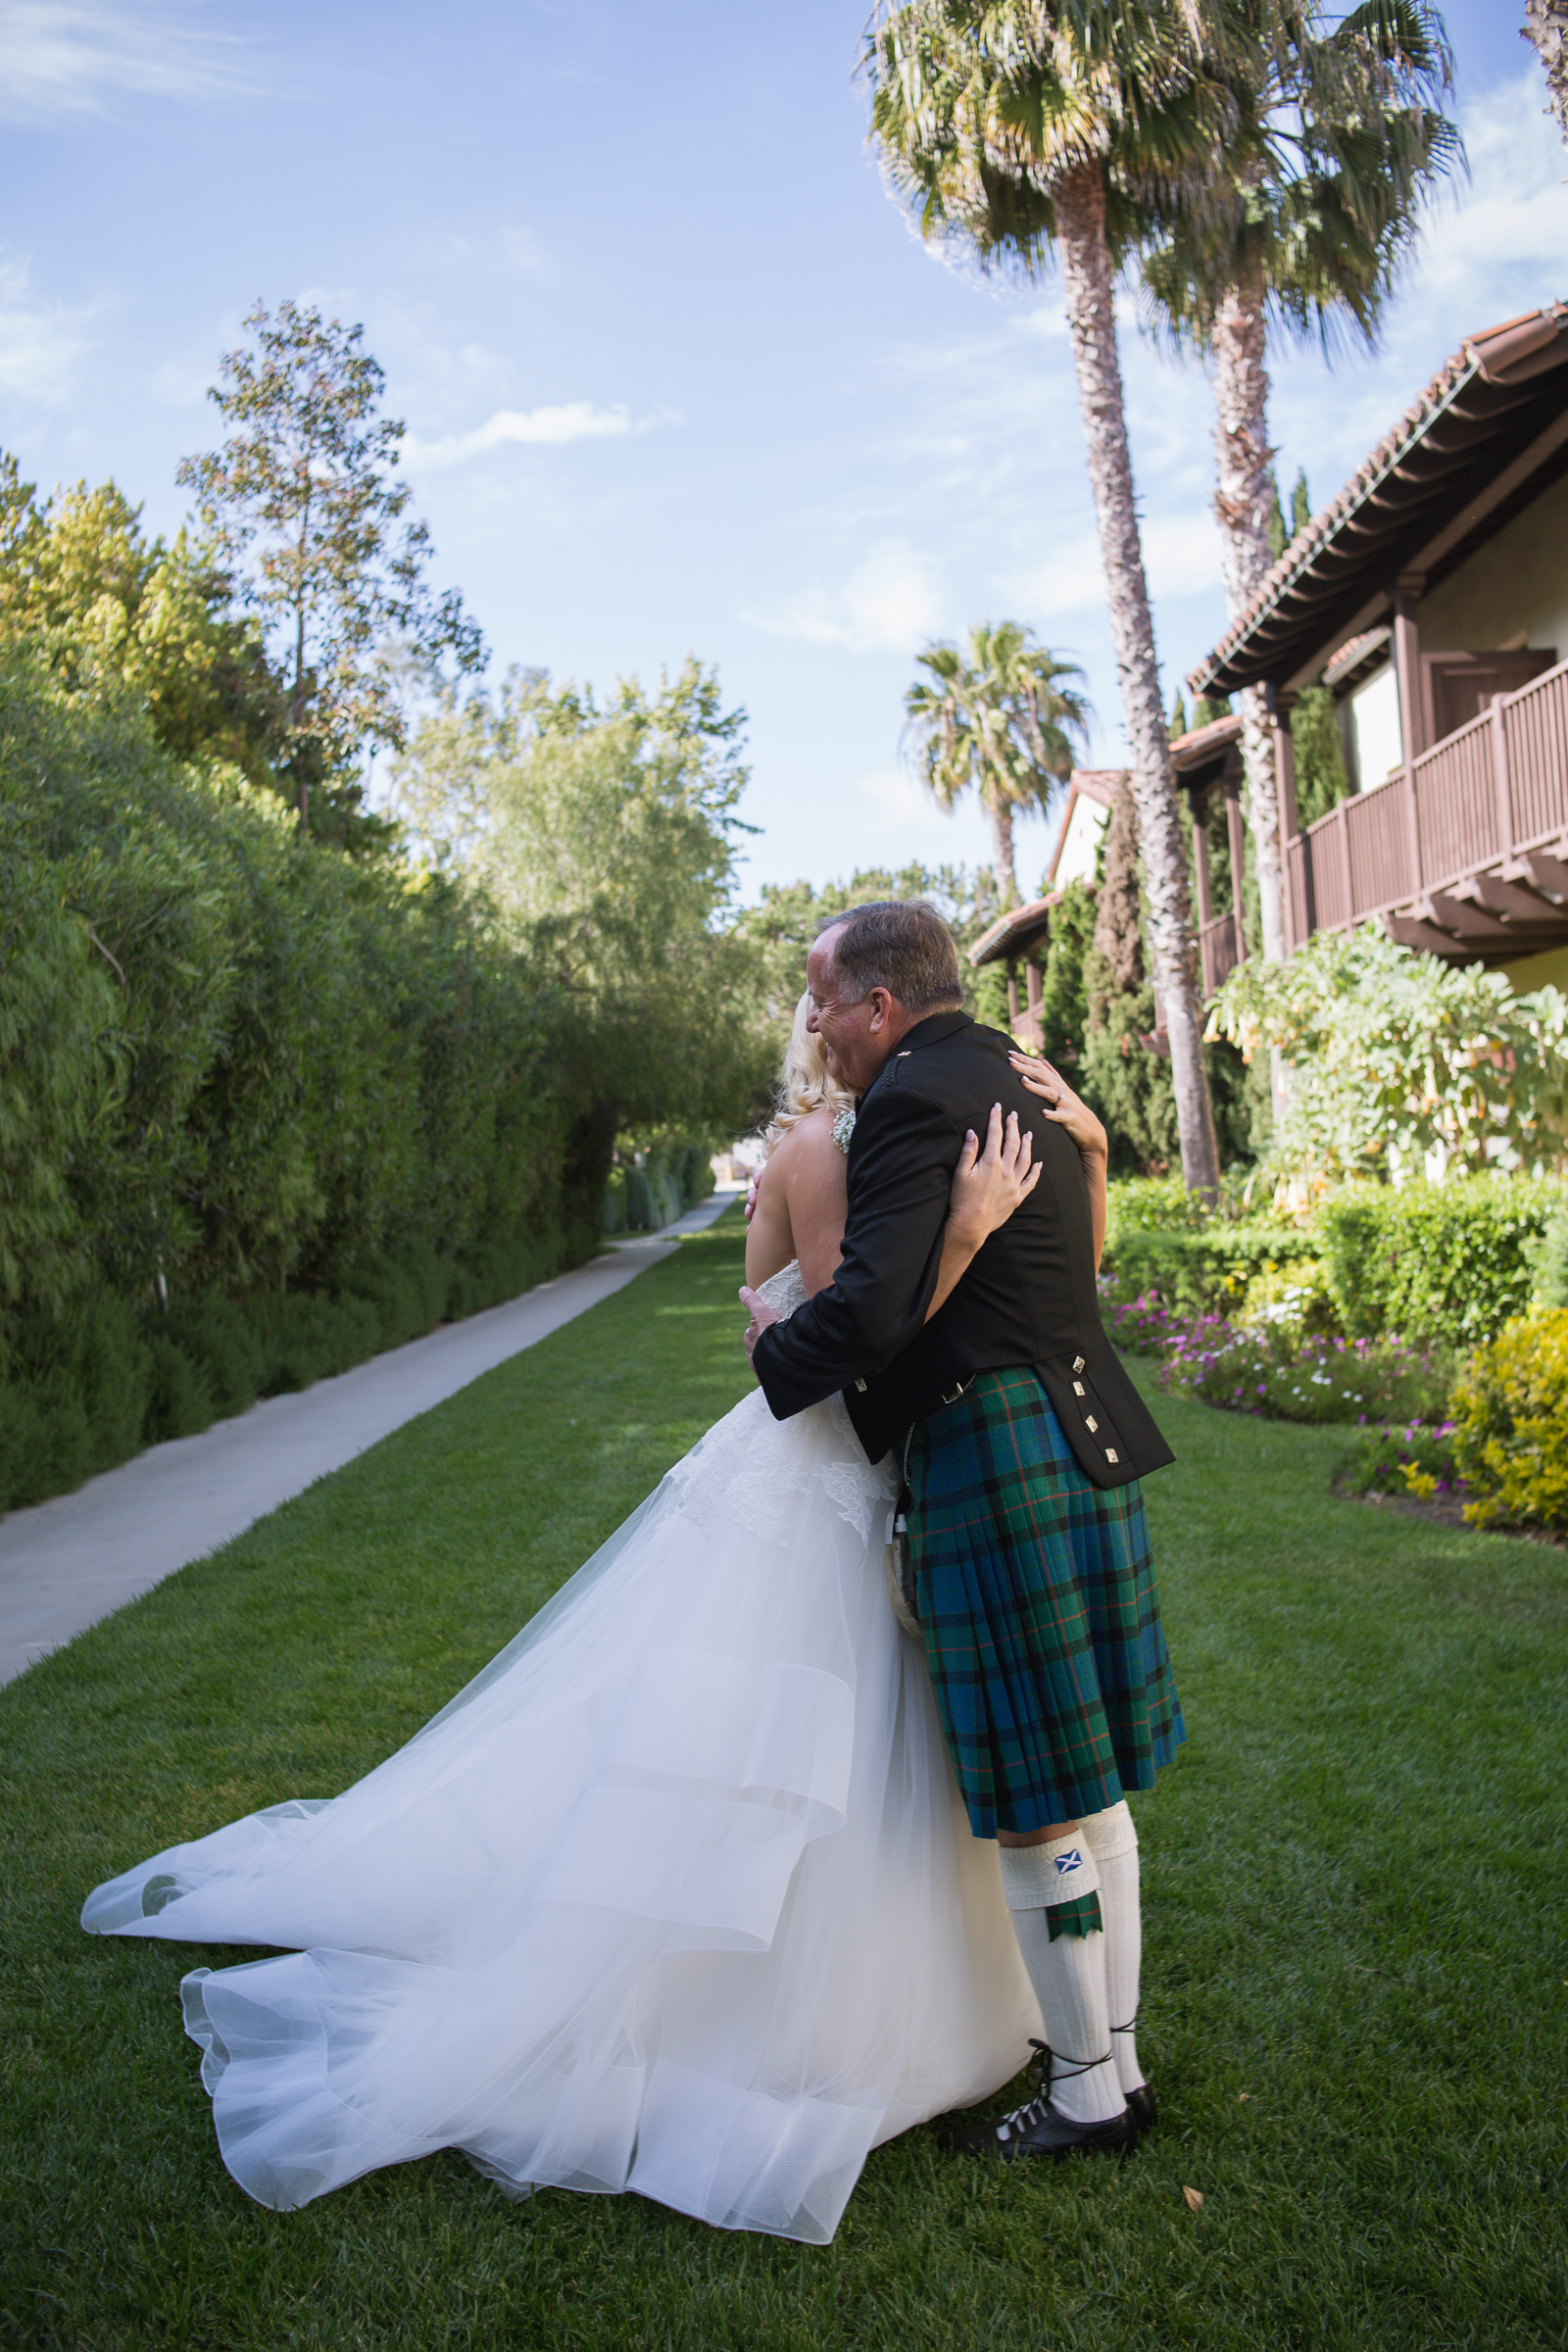 Scotland Wedding Photography with Kilt Wedding Outfit by Destination Wedding Photographers Blessed Weddings